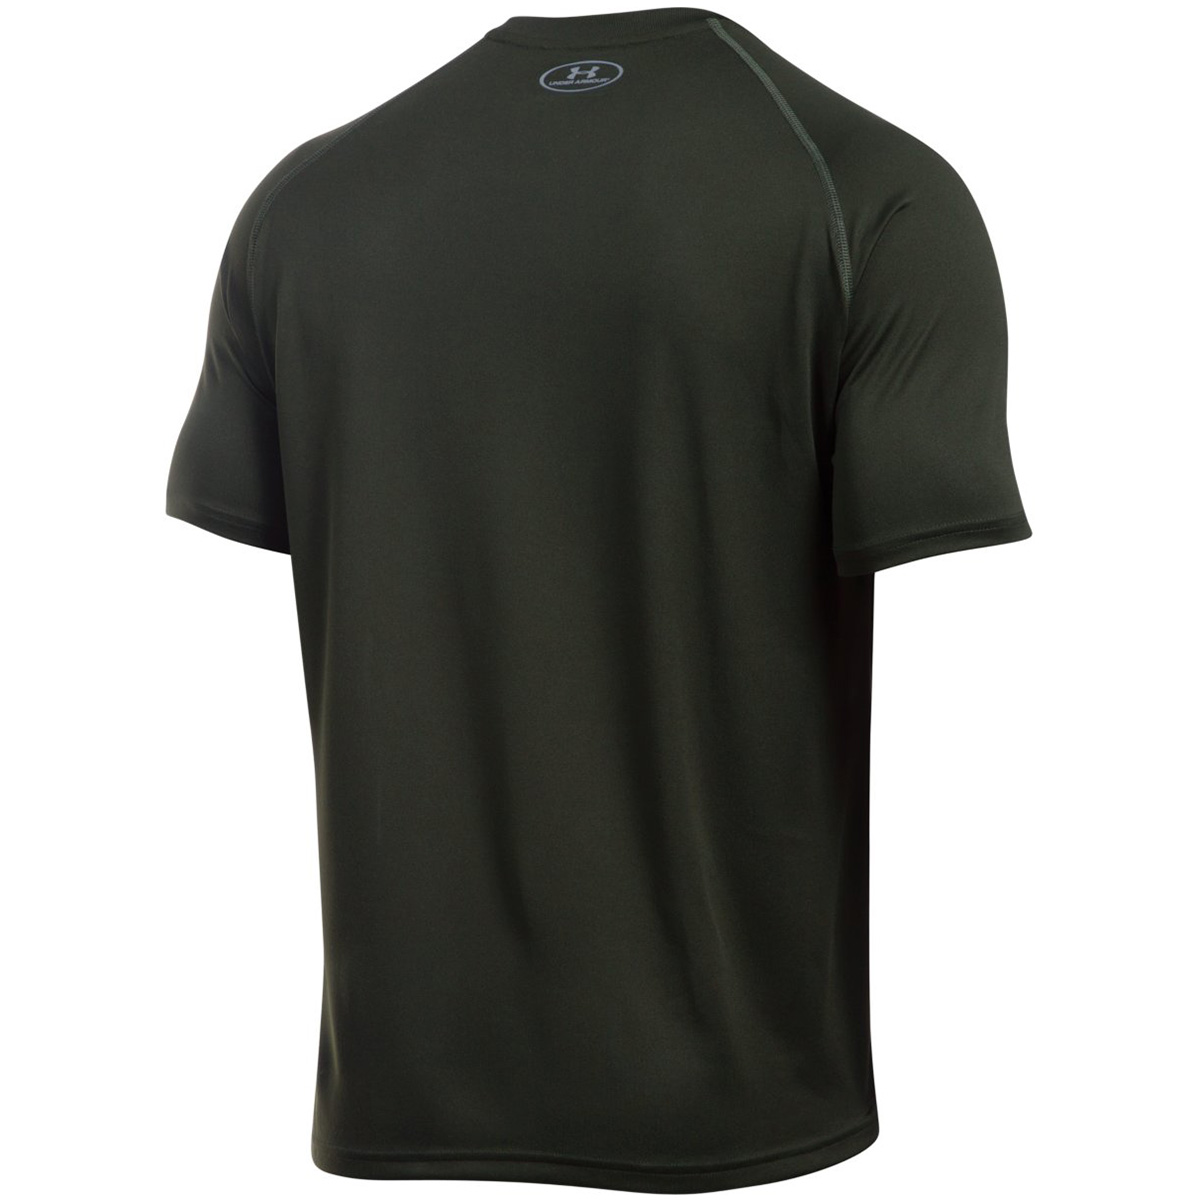 Under-Armour-Mens-UA-Tech-SS-T-Shirt-HeatGear-Training-31-OFF-RRP thumbnail 8